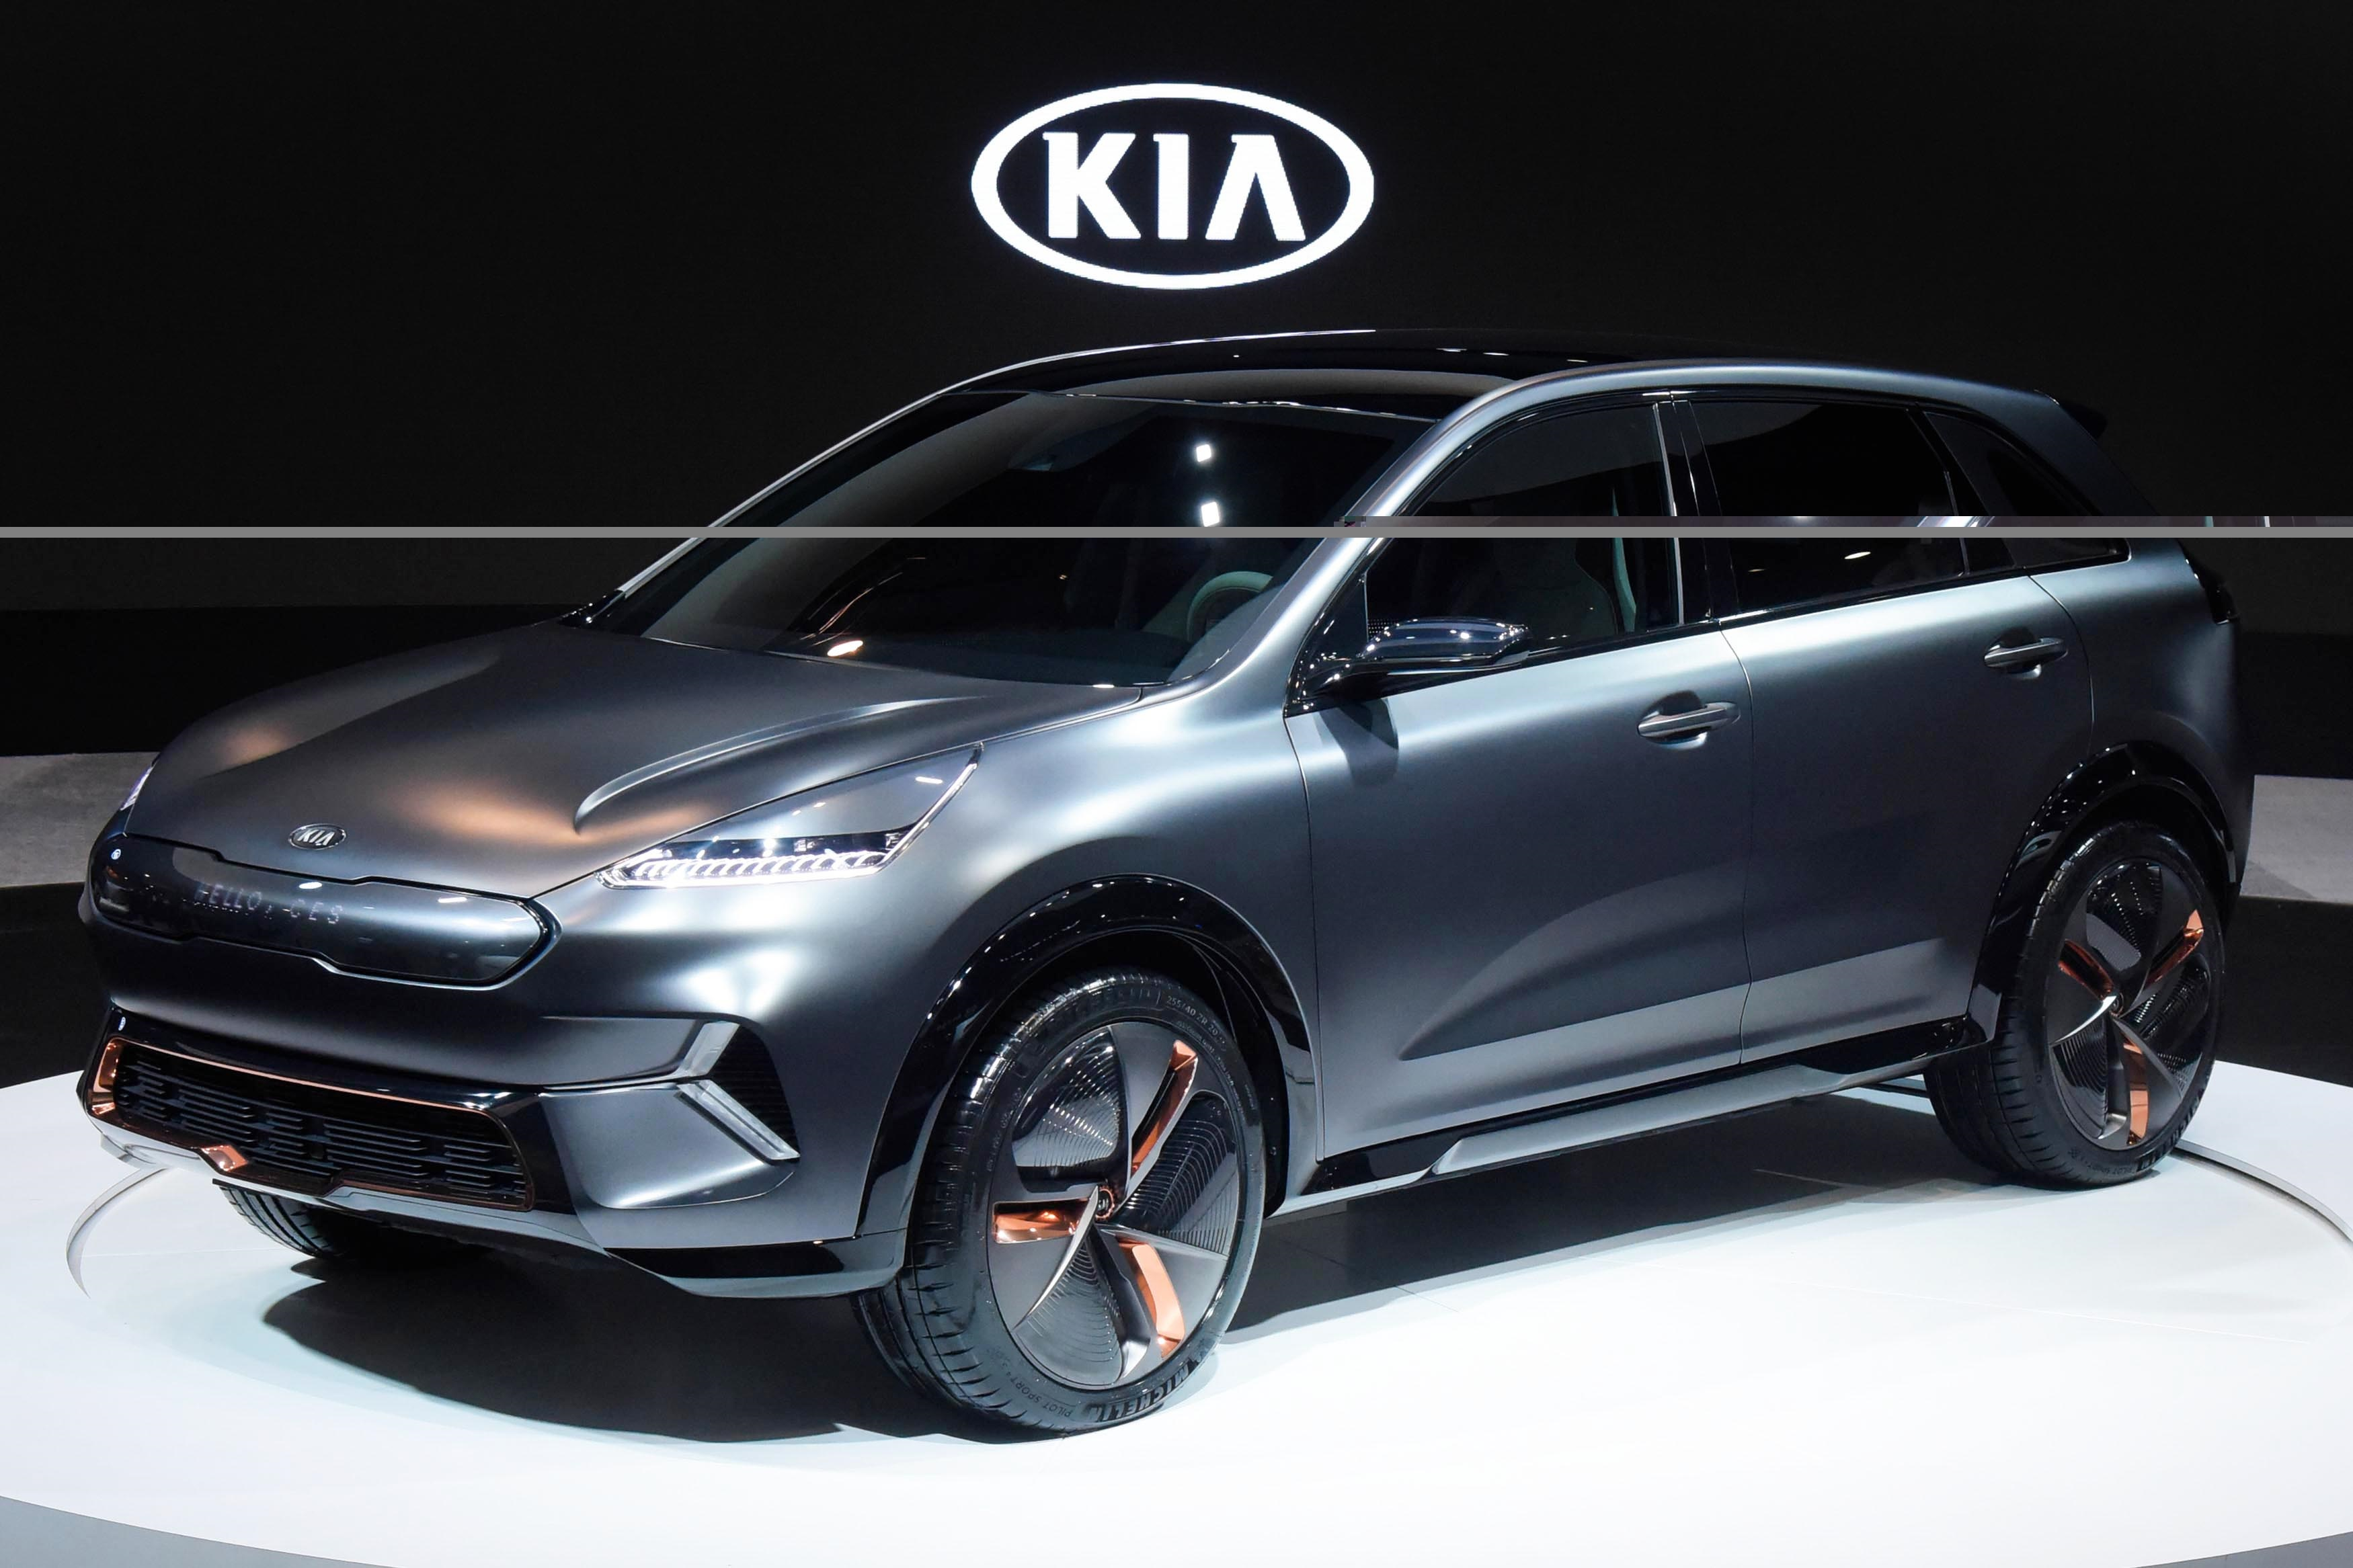 2018 Kia Niro All-electric Model >> 2018 Kia Niro Ev Concept Top Speed